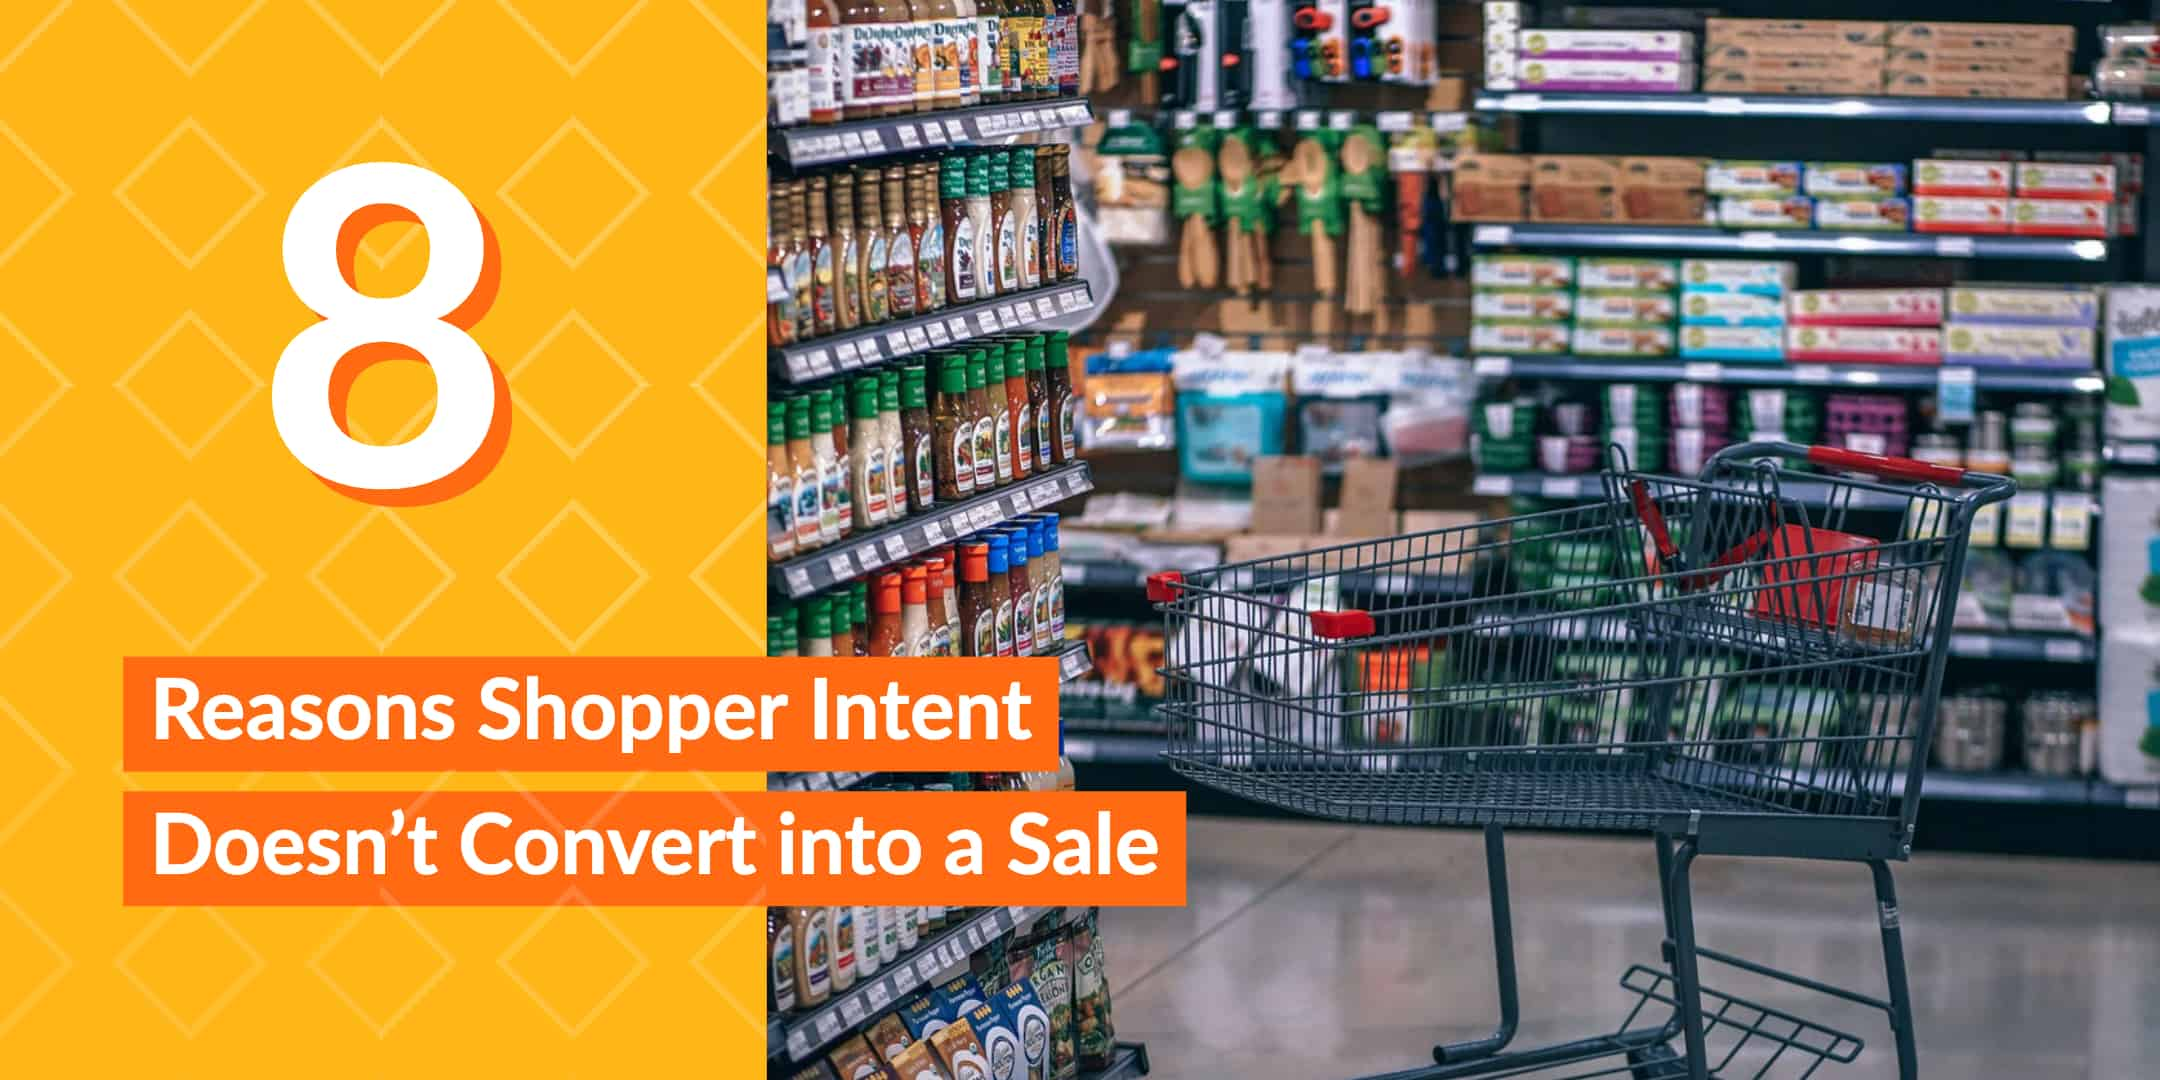 8 Reasons Shopper Intent Doesn't Convert into a Sale StrasGlobal